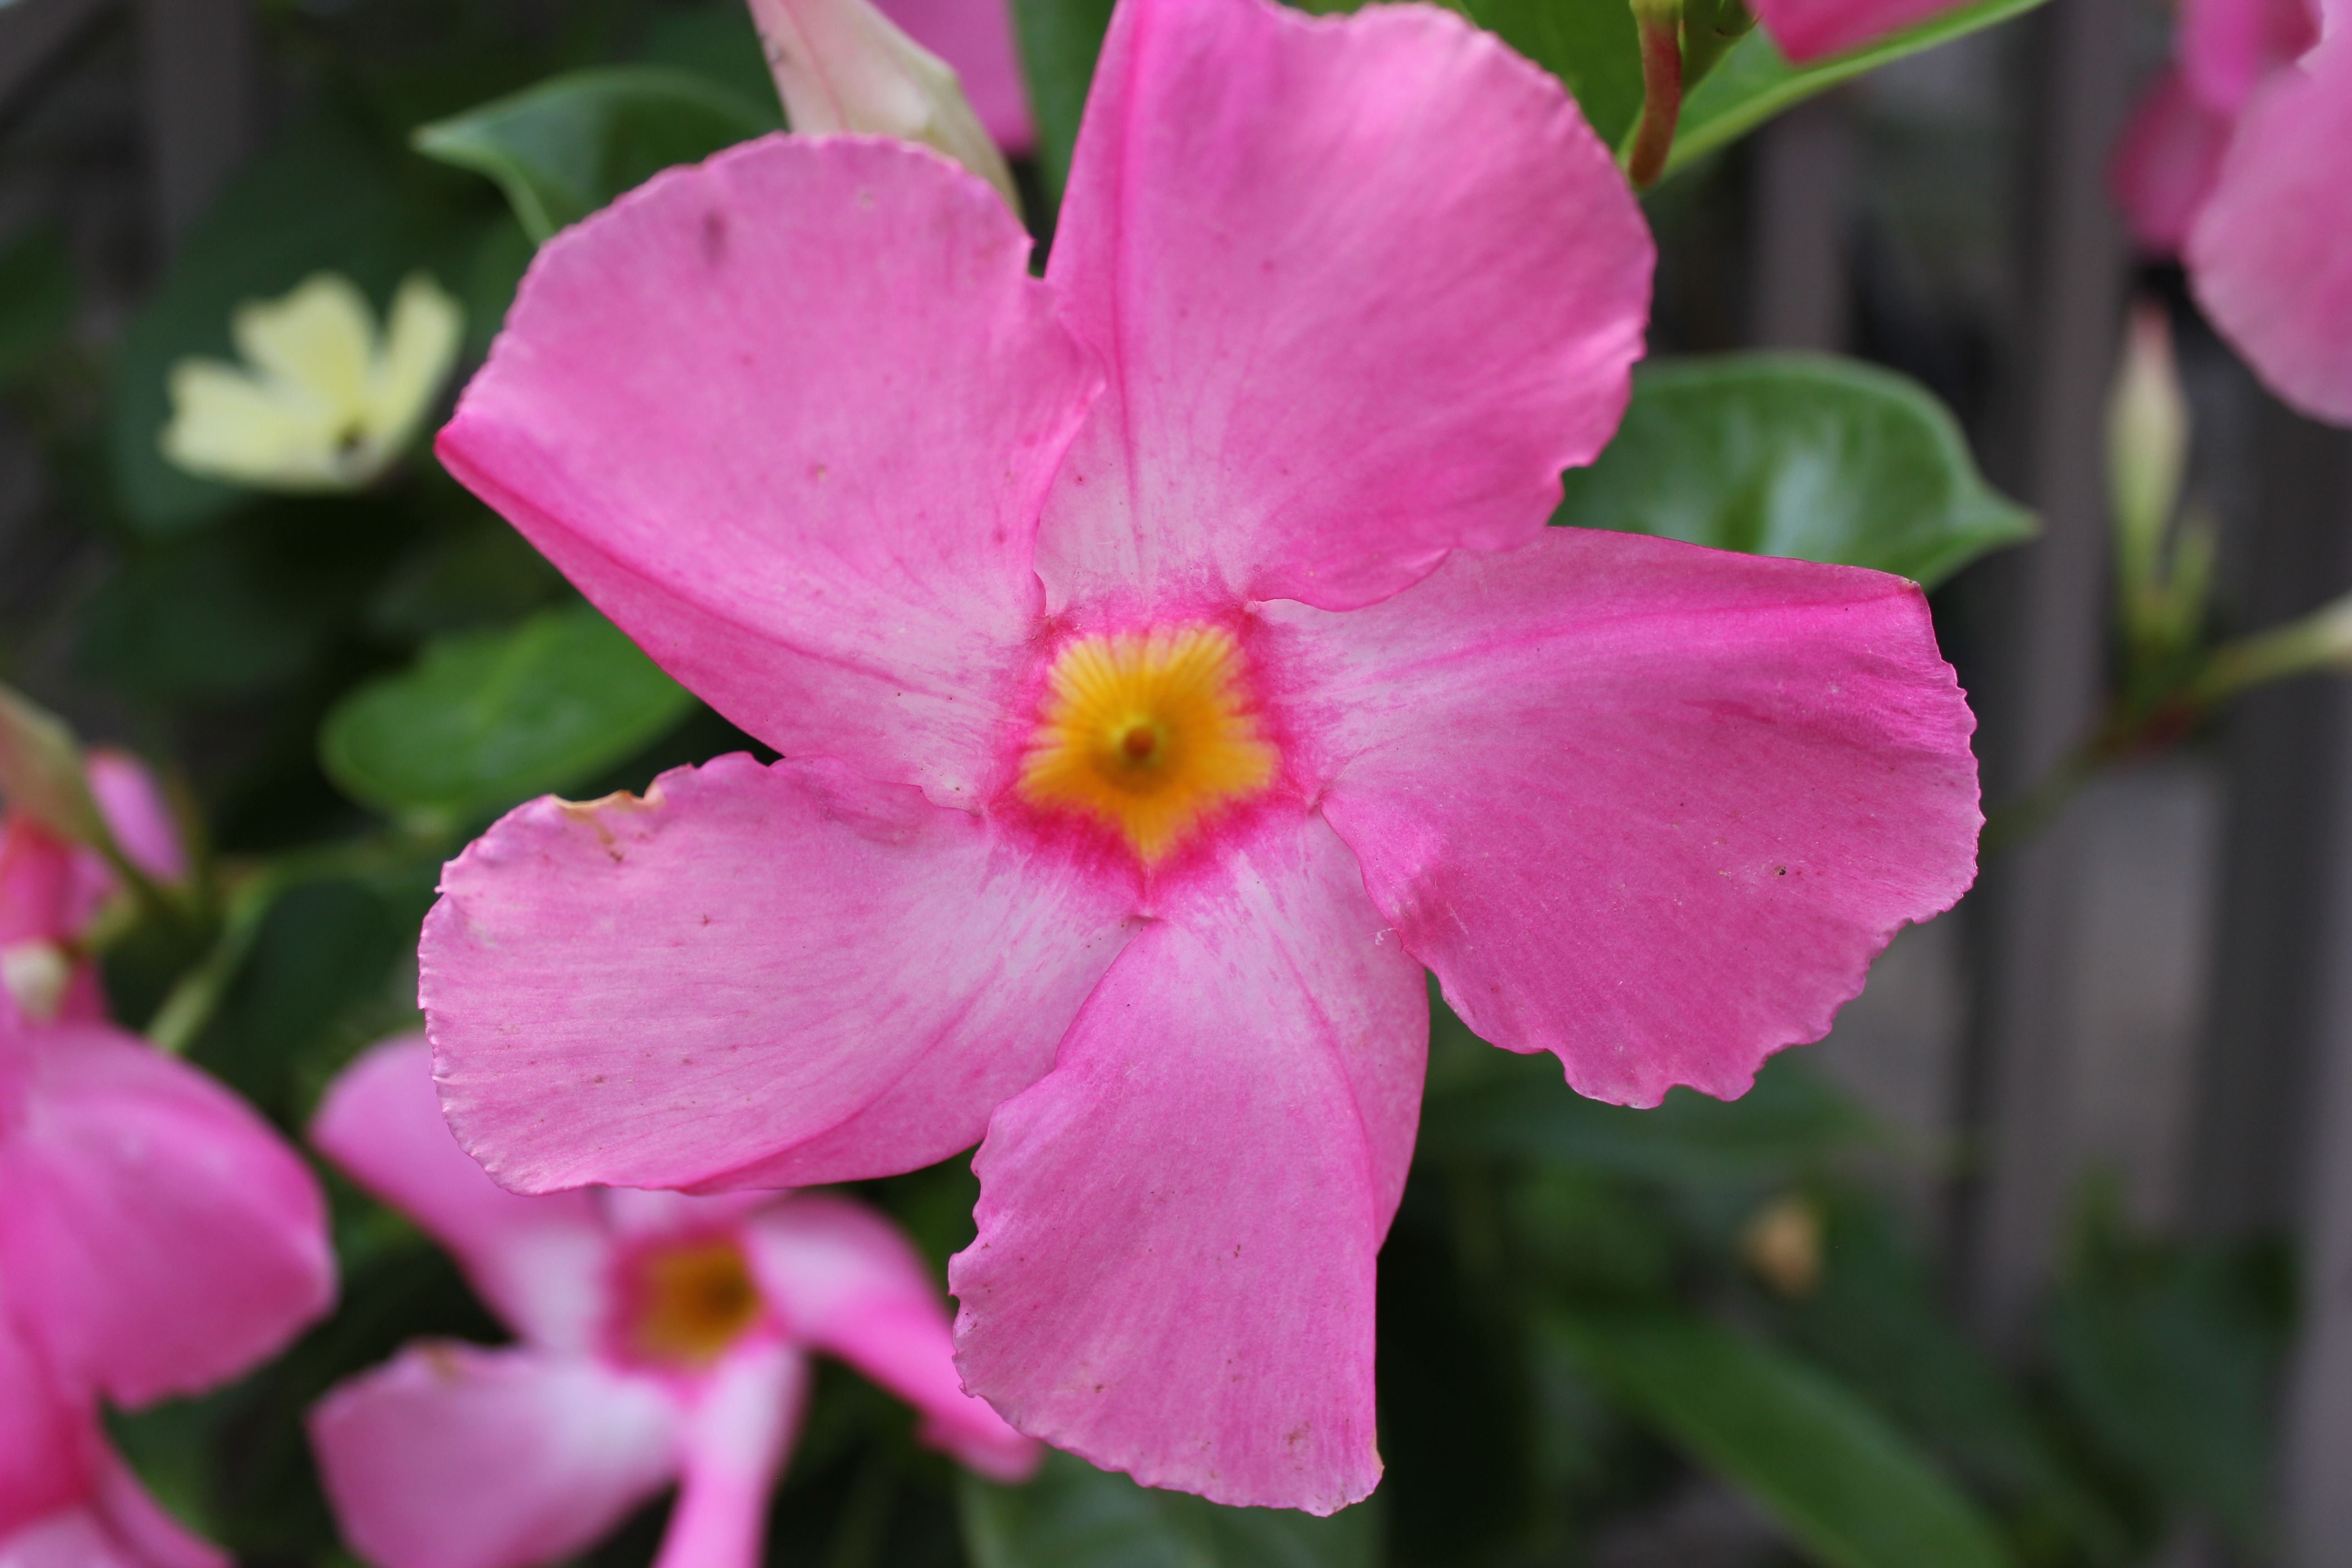 Sun Parasol Giant Pink Mandevilla Blooms Theme Gardens At The